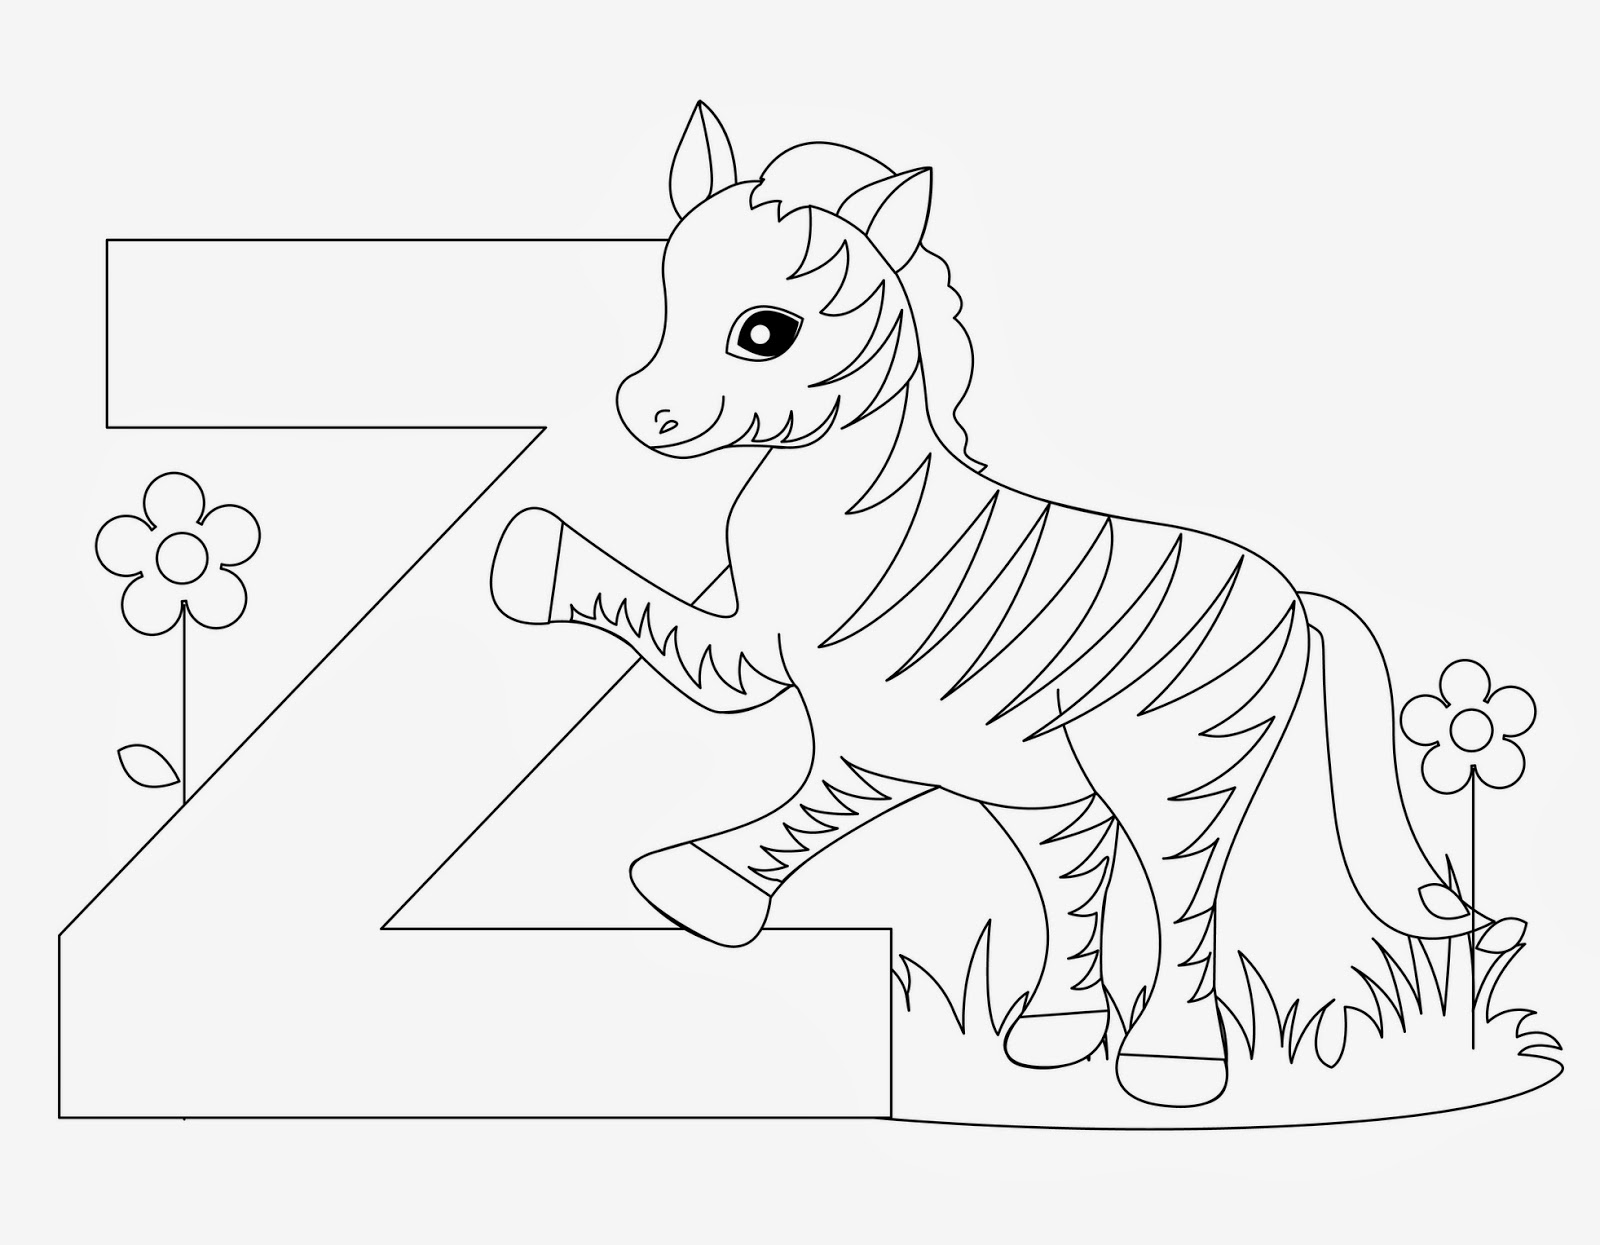 printable Alphabet Coloring Pages Zebra